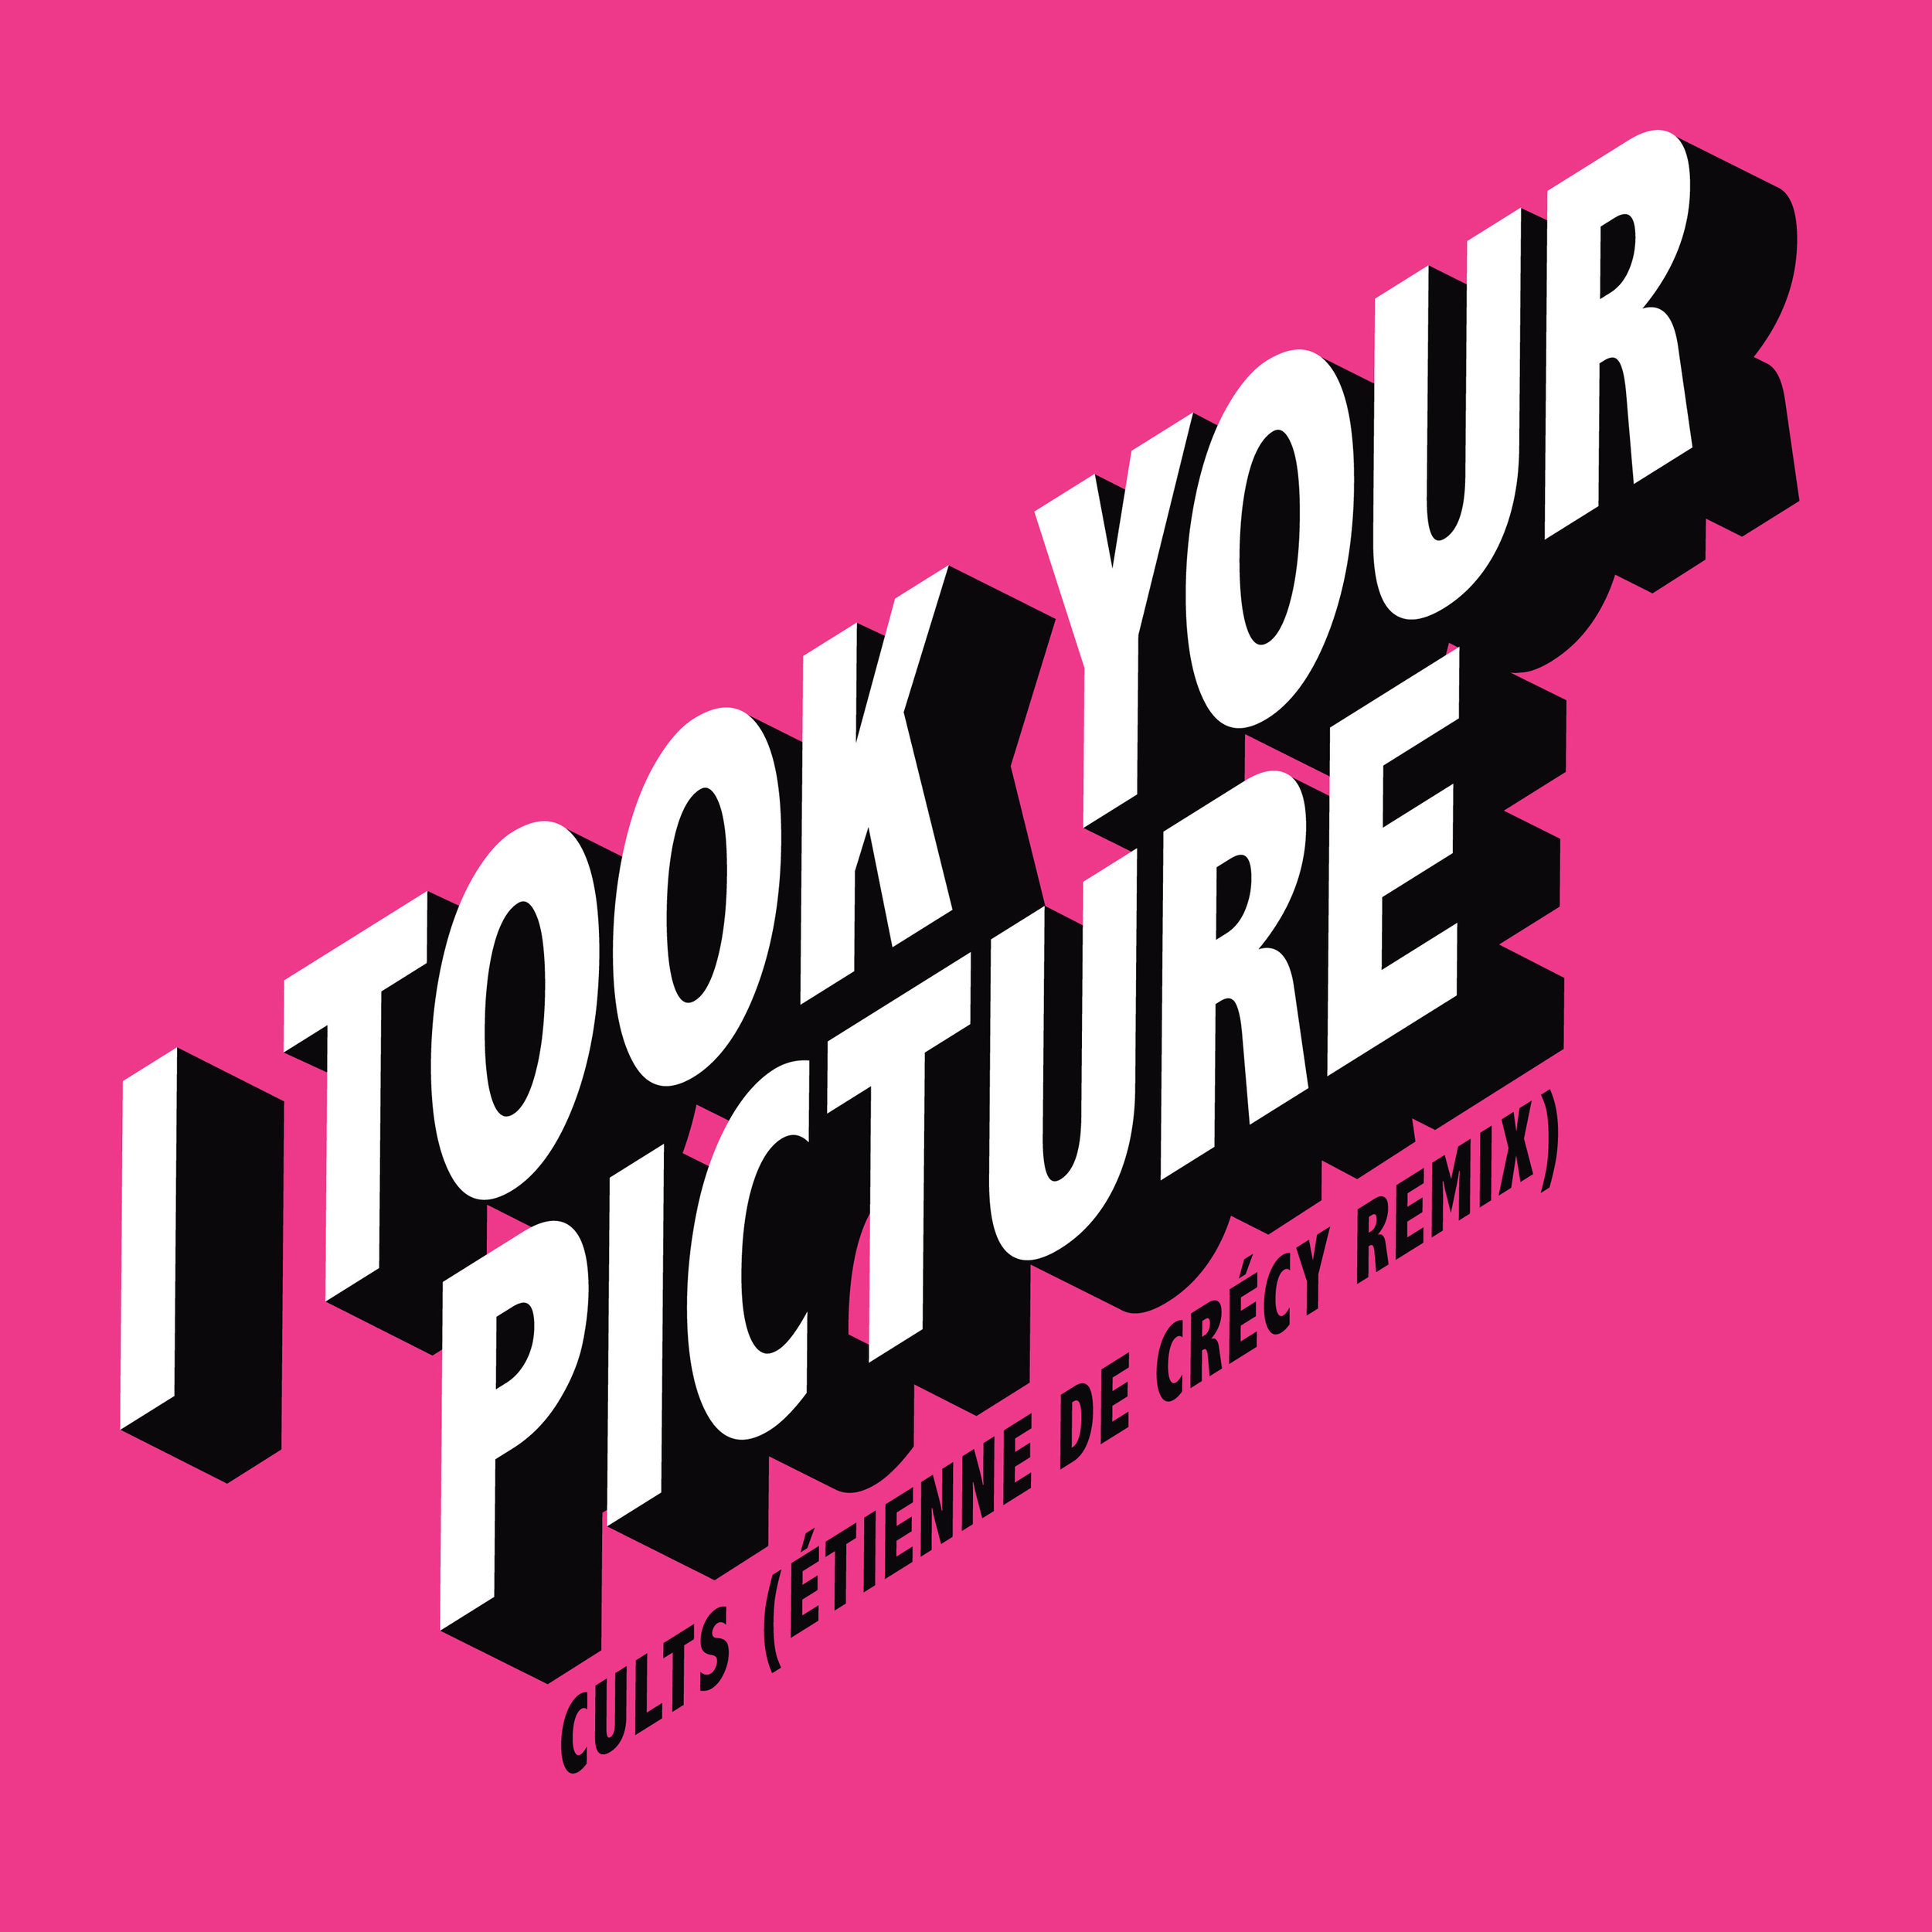 i took your picture.jpg